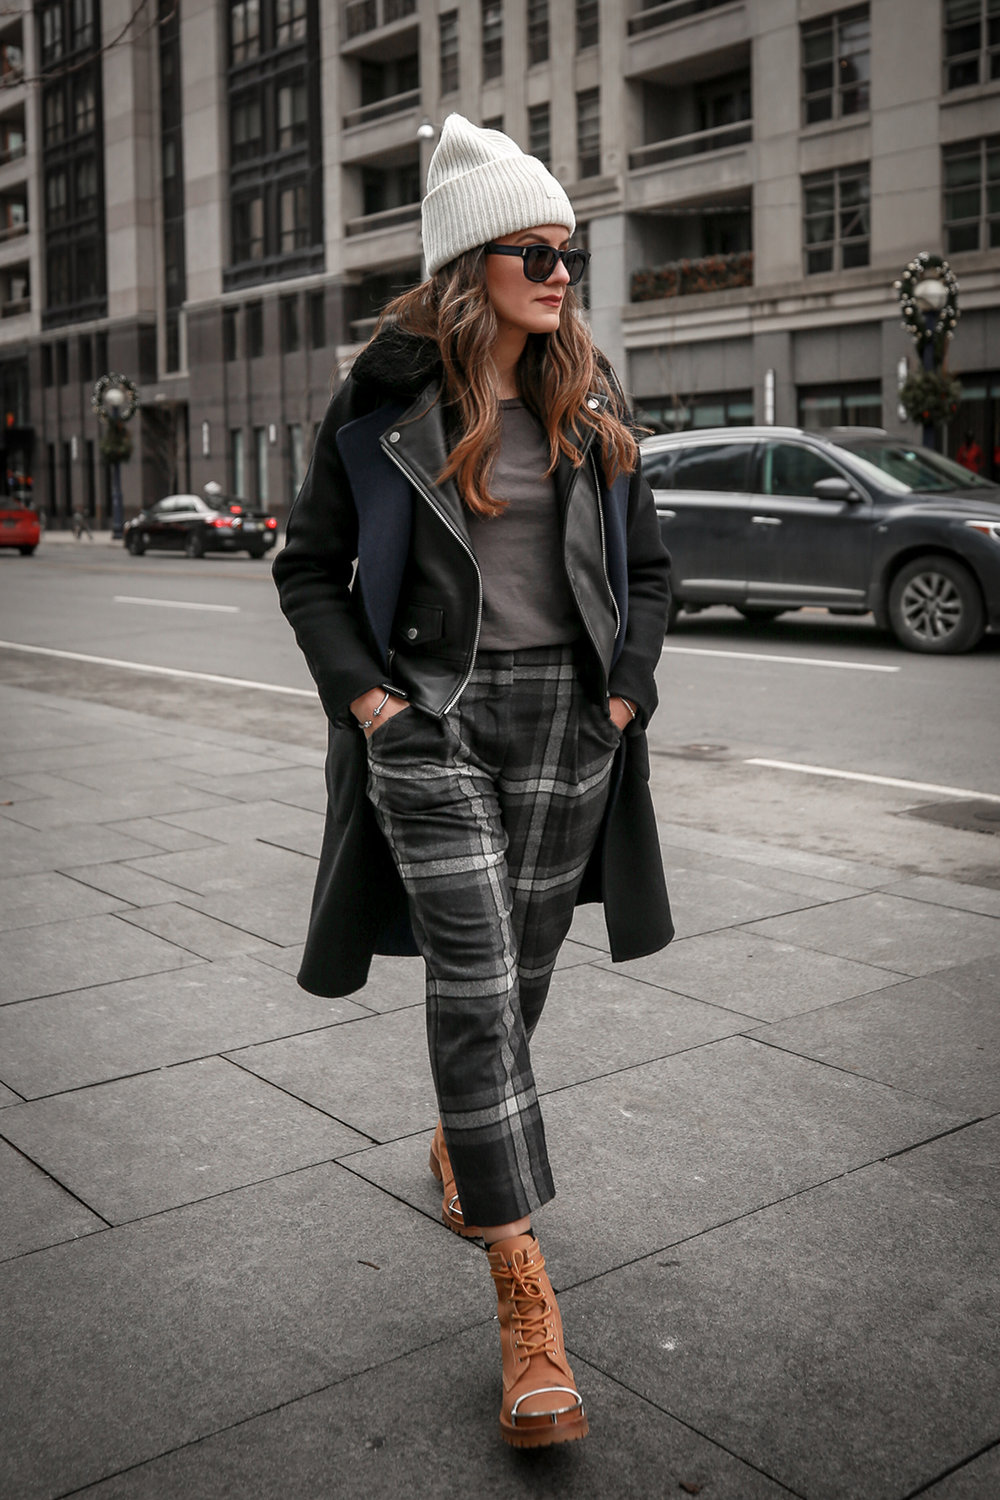 Nathalie Martin wearing Aritzia Chambery plaid pant, Rudsak Mythos leather:shearling jacket, Alexander Wang Lyndon boots, Acne Studios Pansy face beanie ivory, Saint Laurent blue square glasses, Rag & Bone wool reversible coat, woahstyle.com_4598-2.jpg